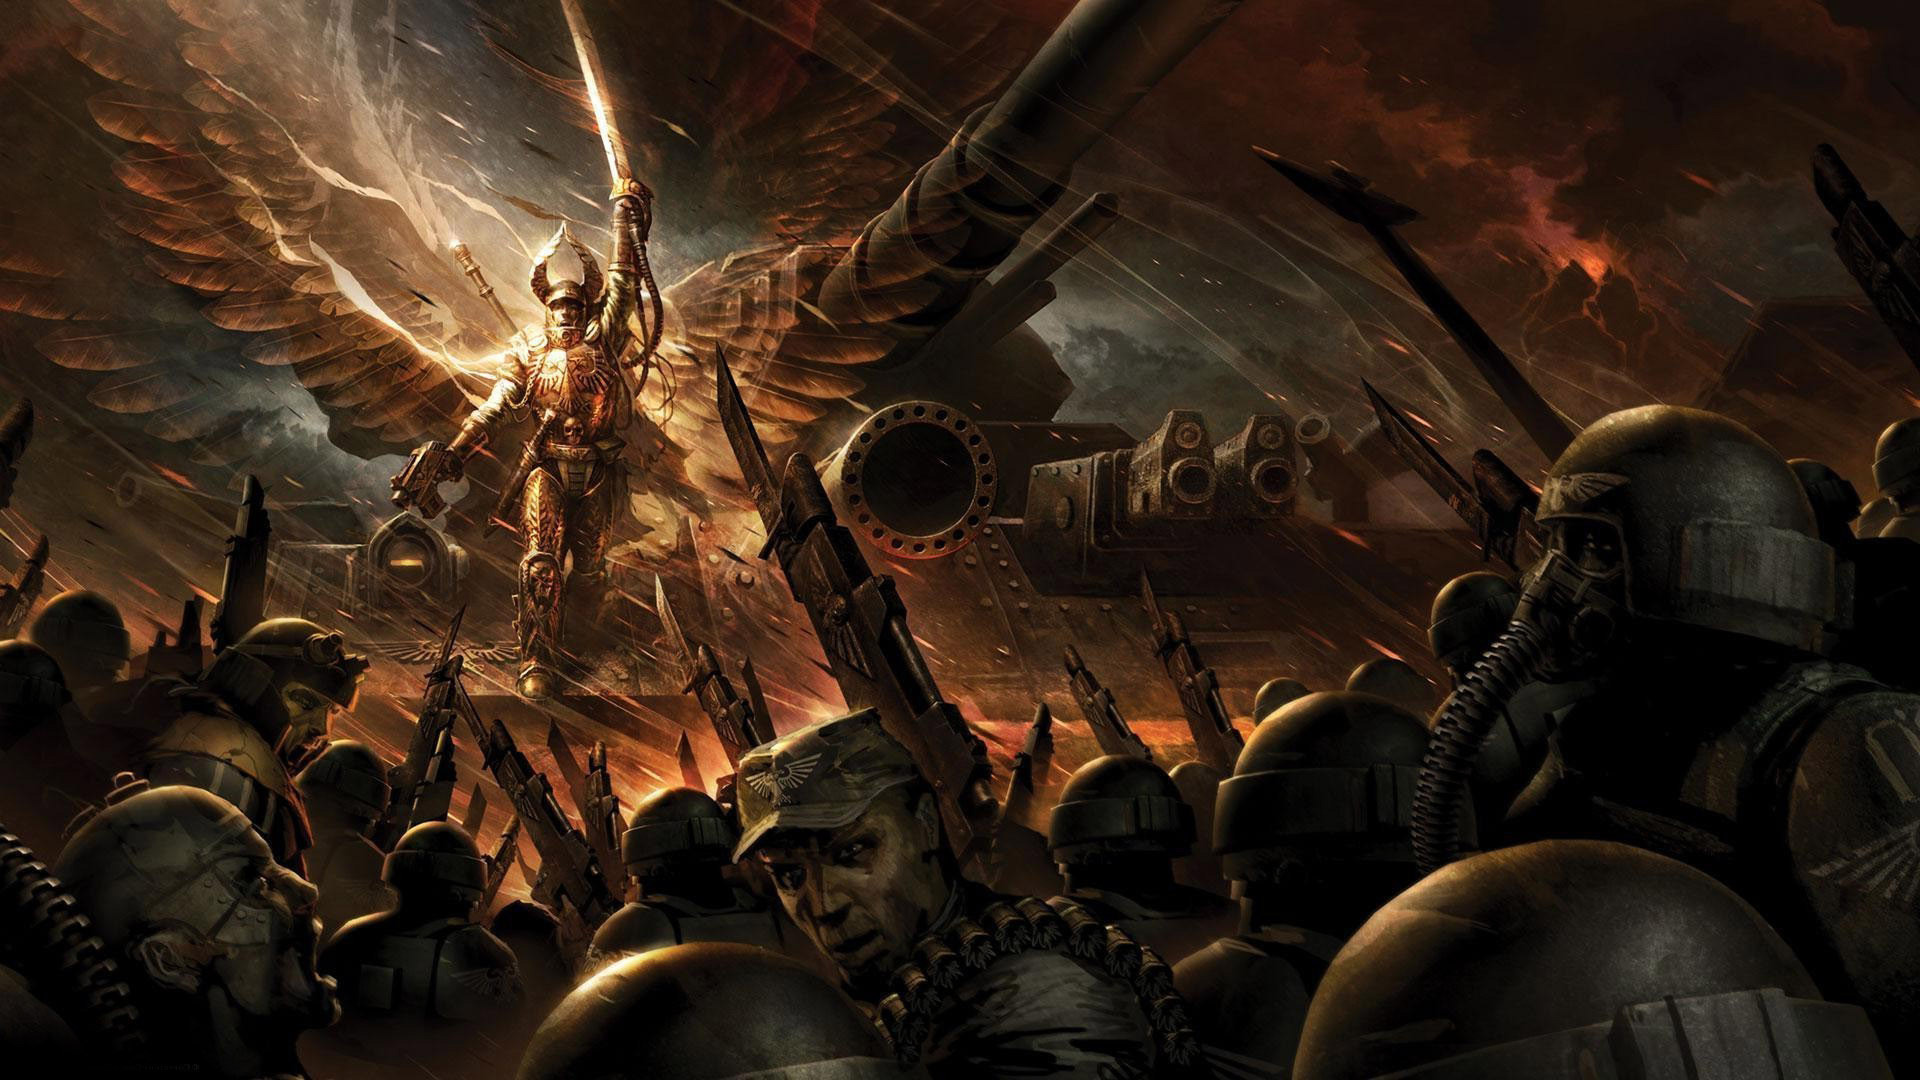 1920x1080 Imperial Guard - Warhammer 40,000 wallpaper #14774